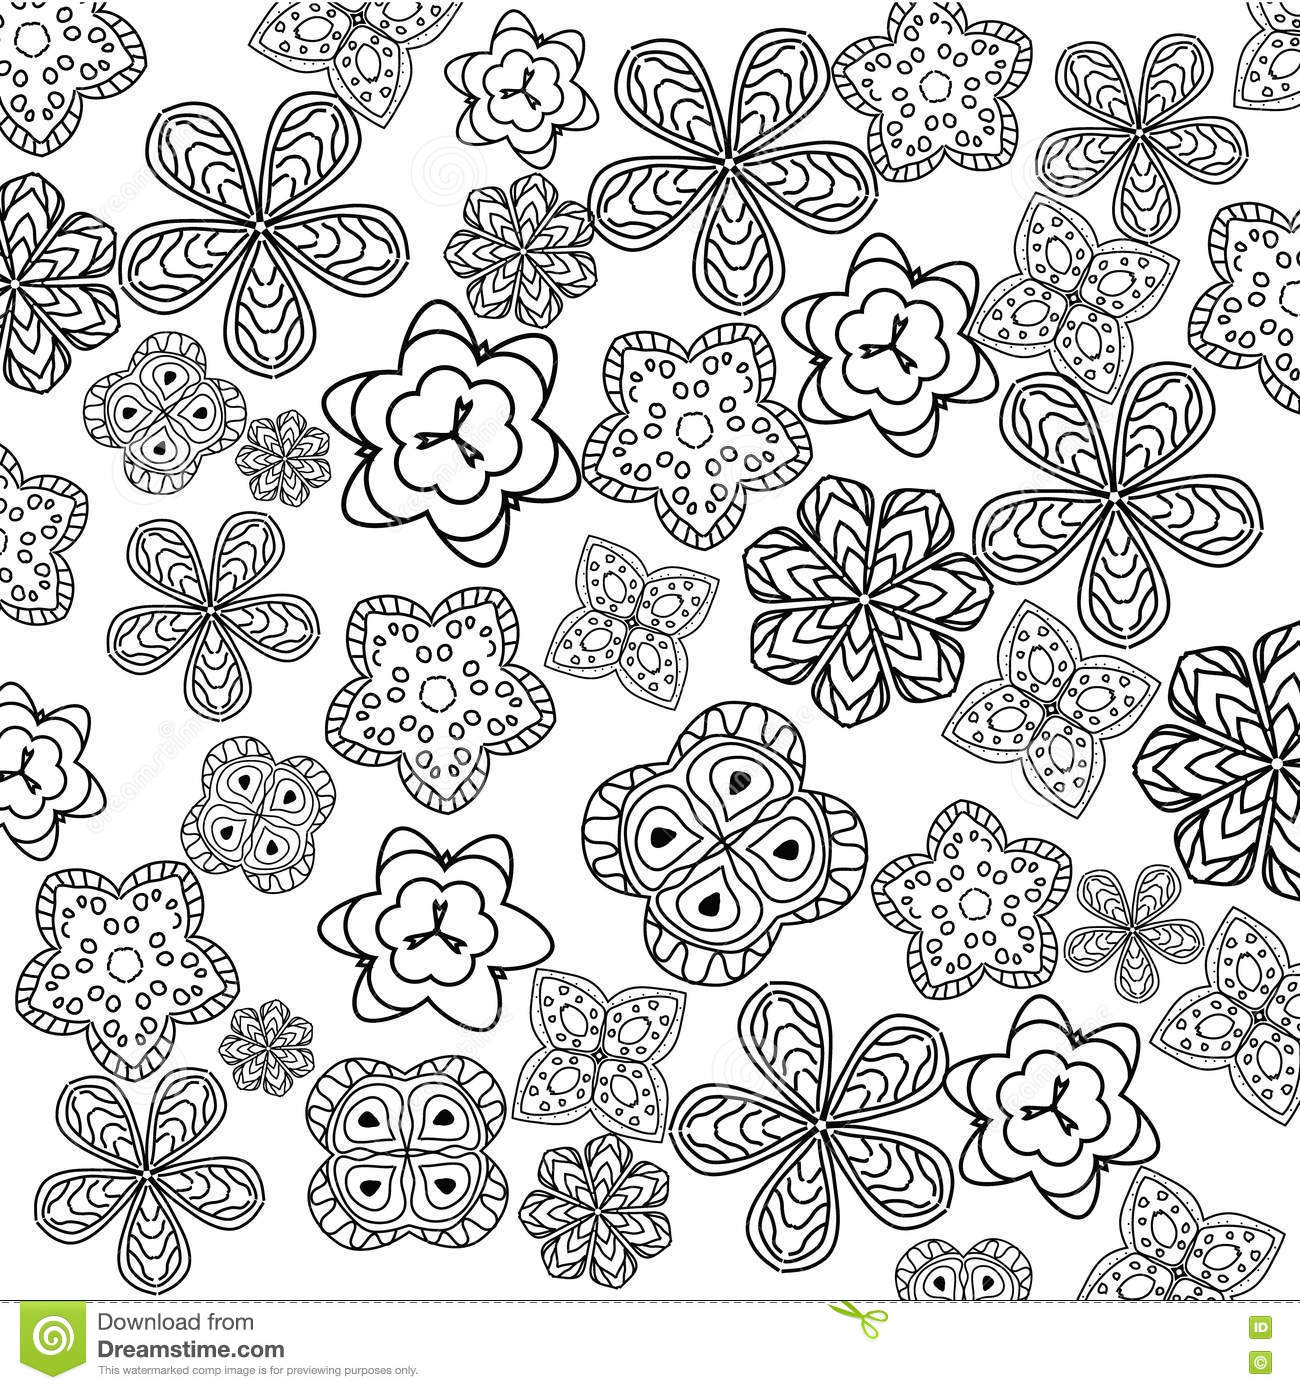 Relaxing Coloring Page With Flowers For Kids And Adults